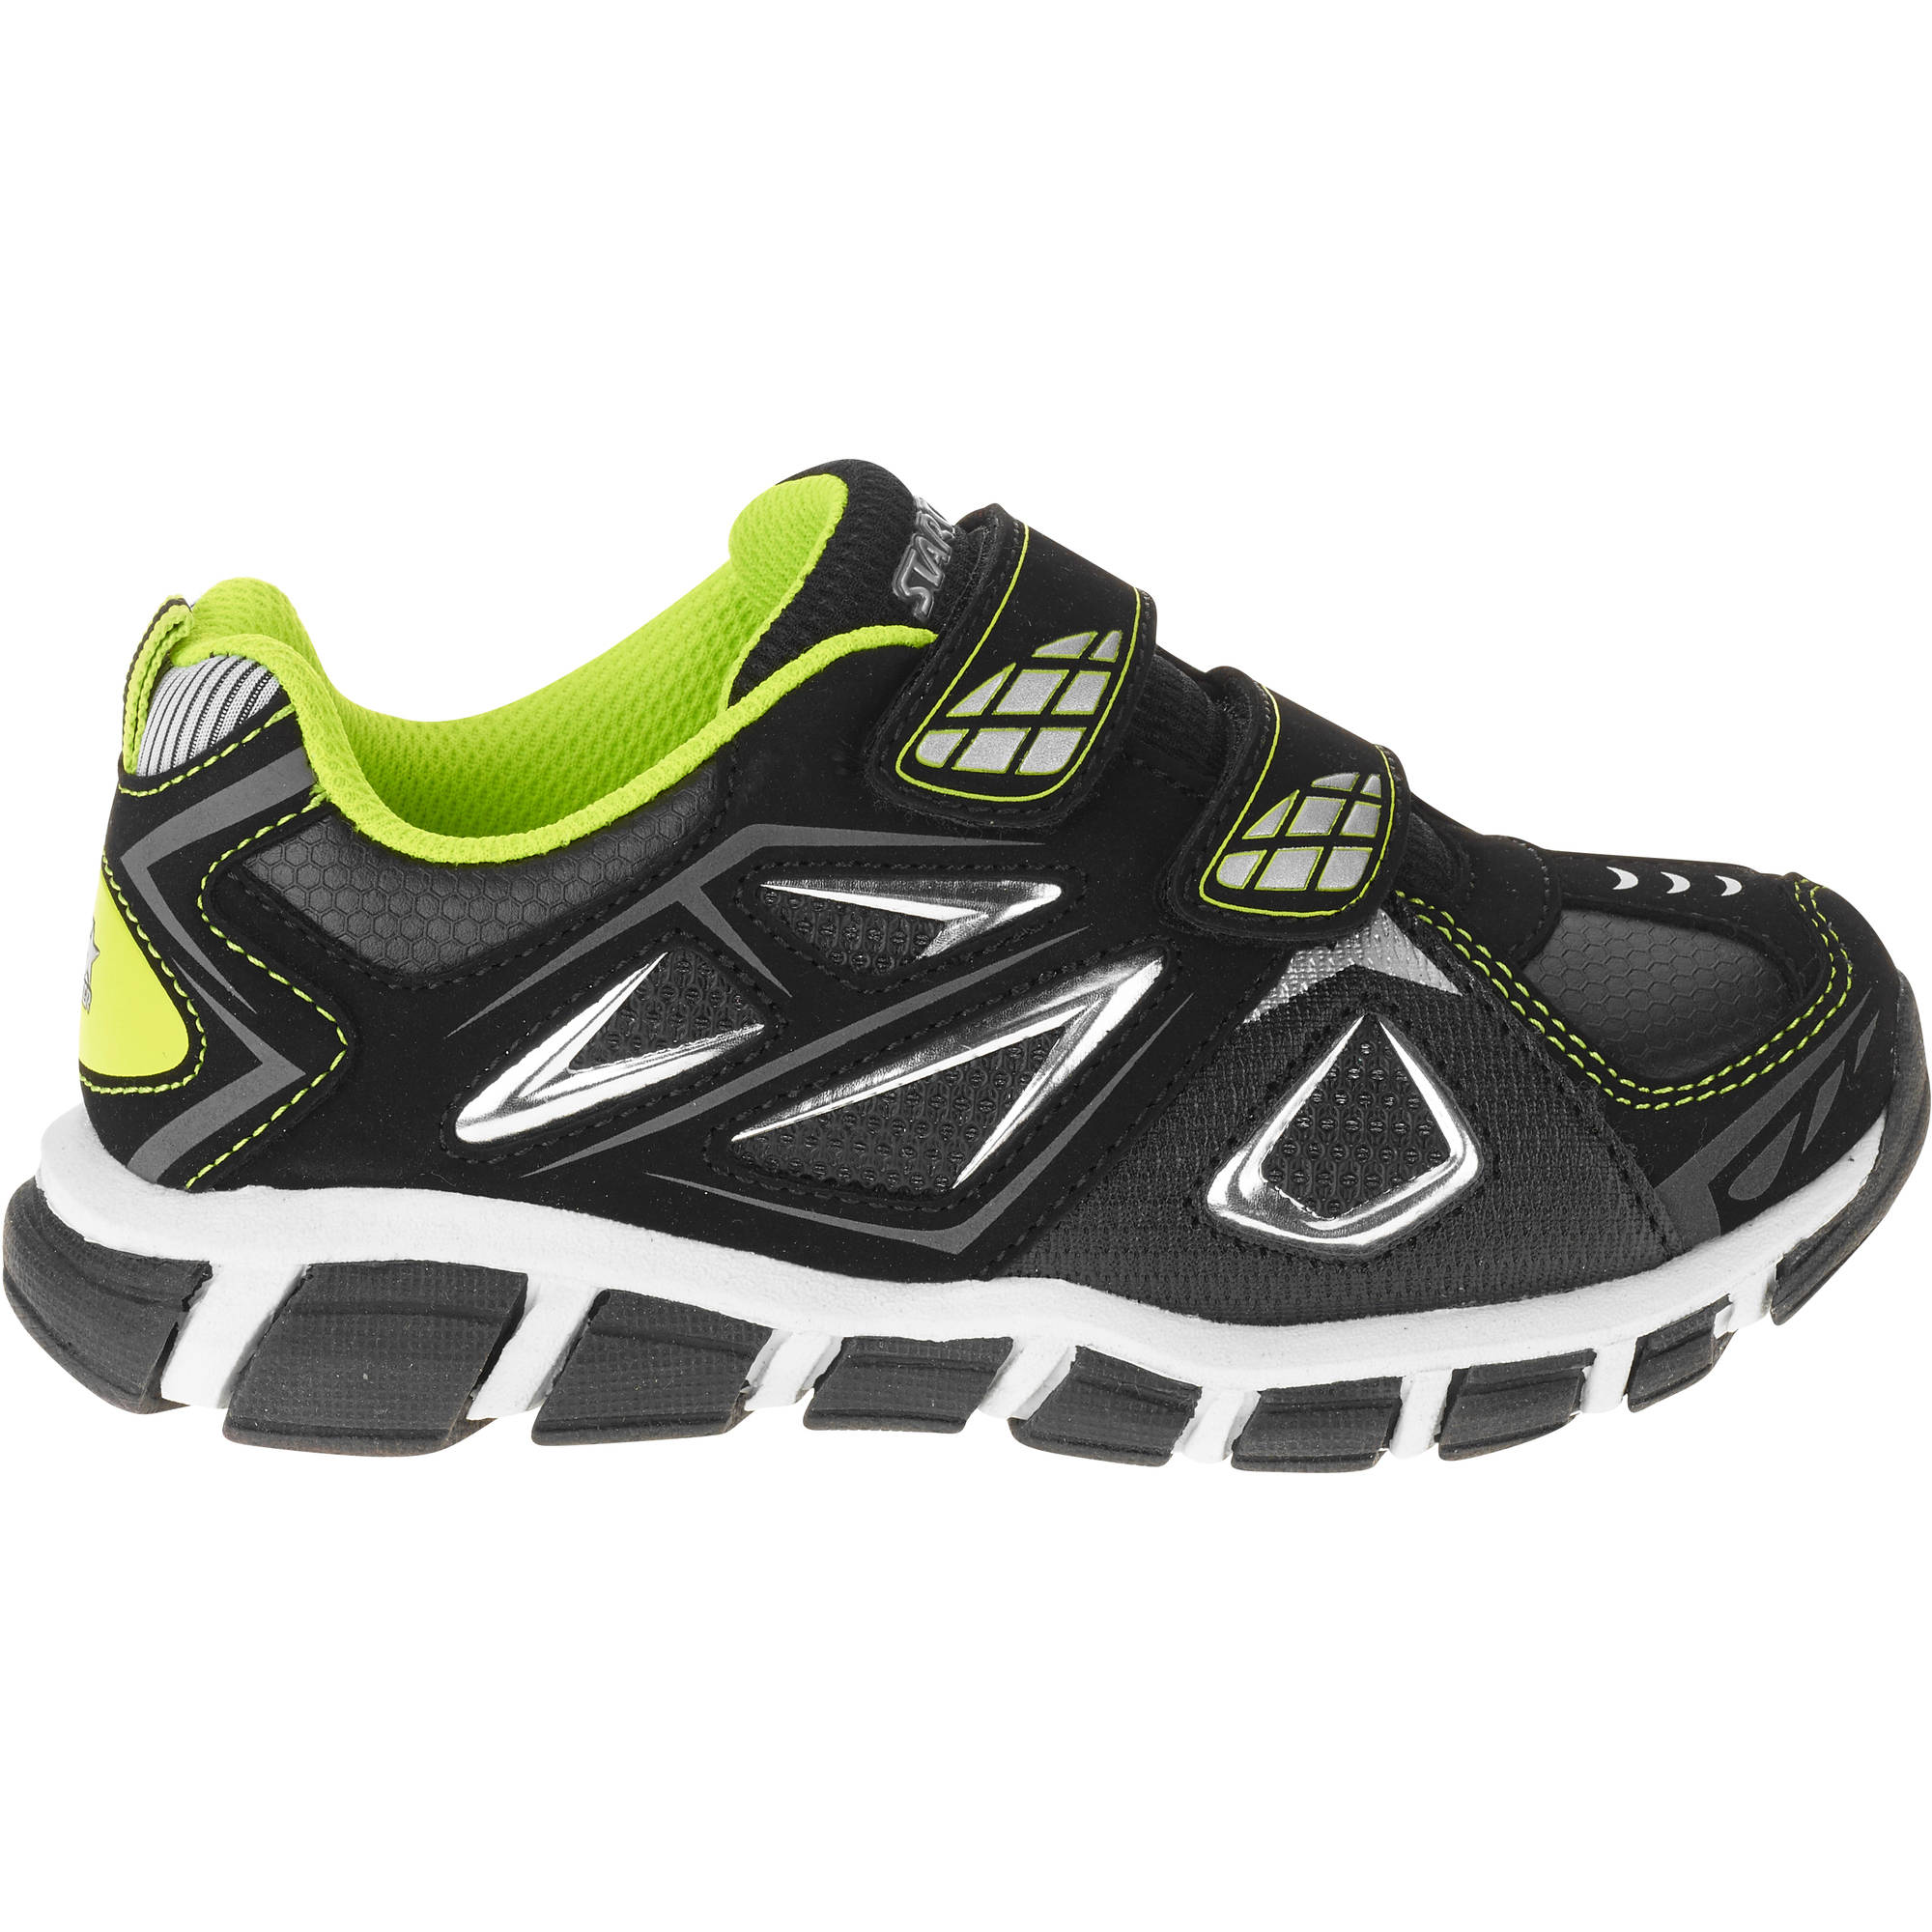 Two Strap Athletic Shoe